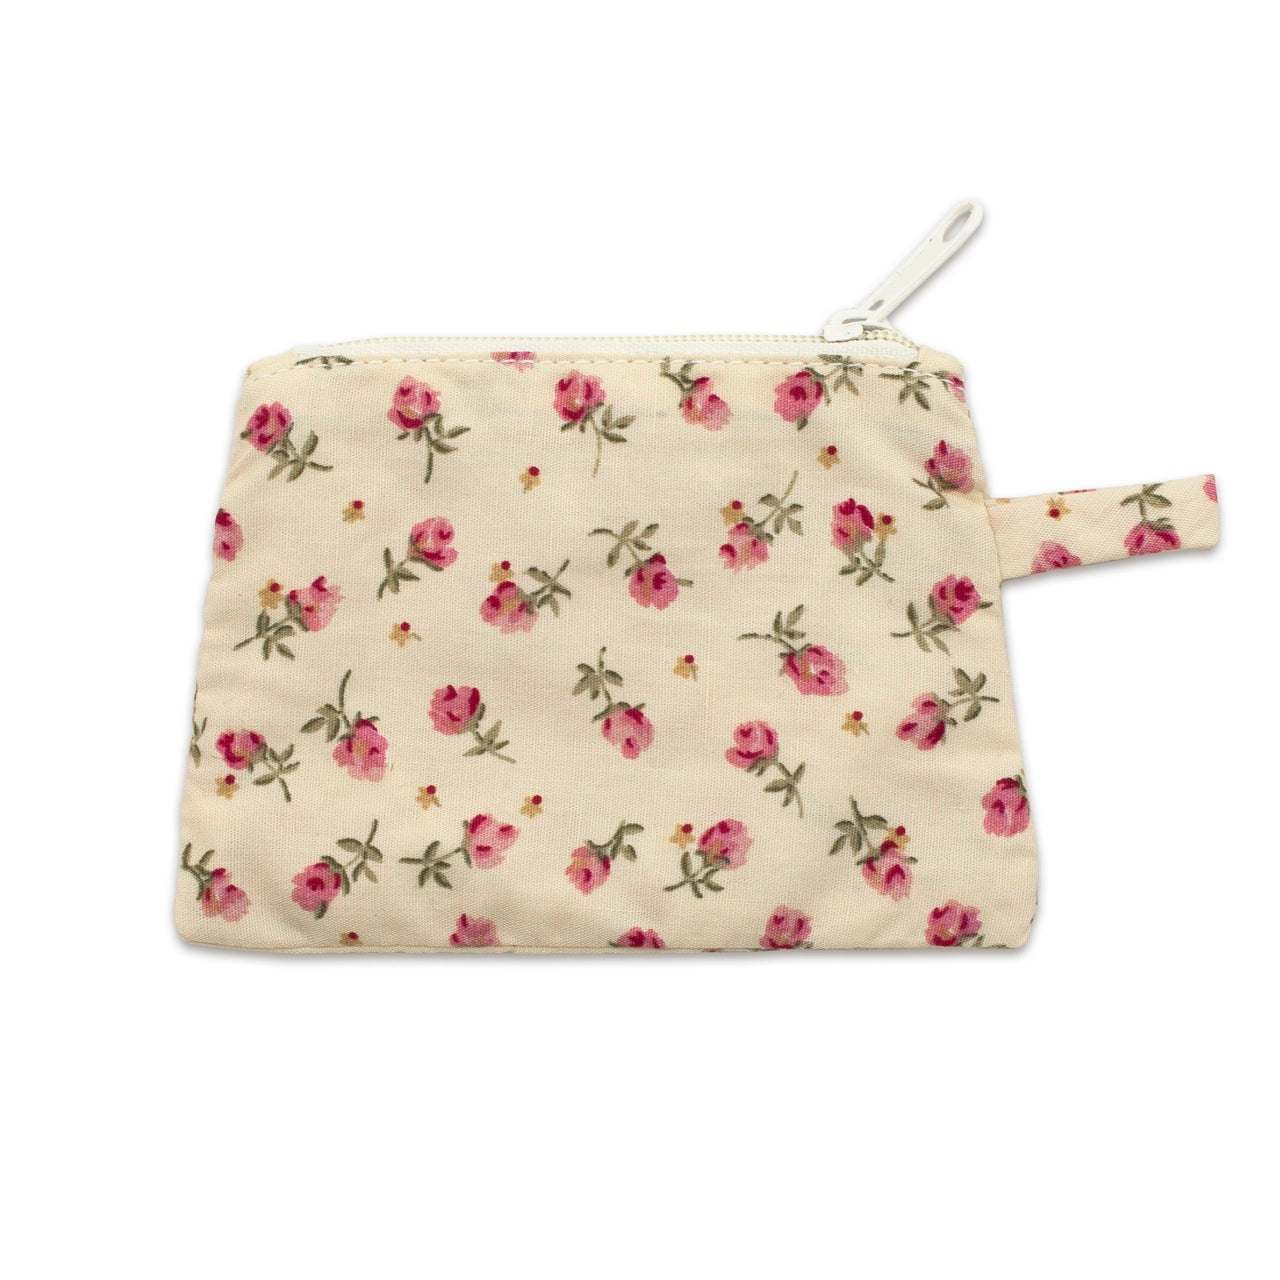 Mini Purse - 3 Colour Options